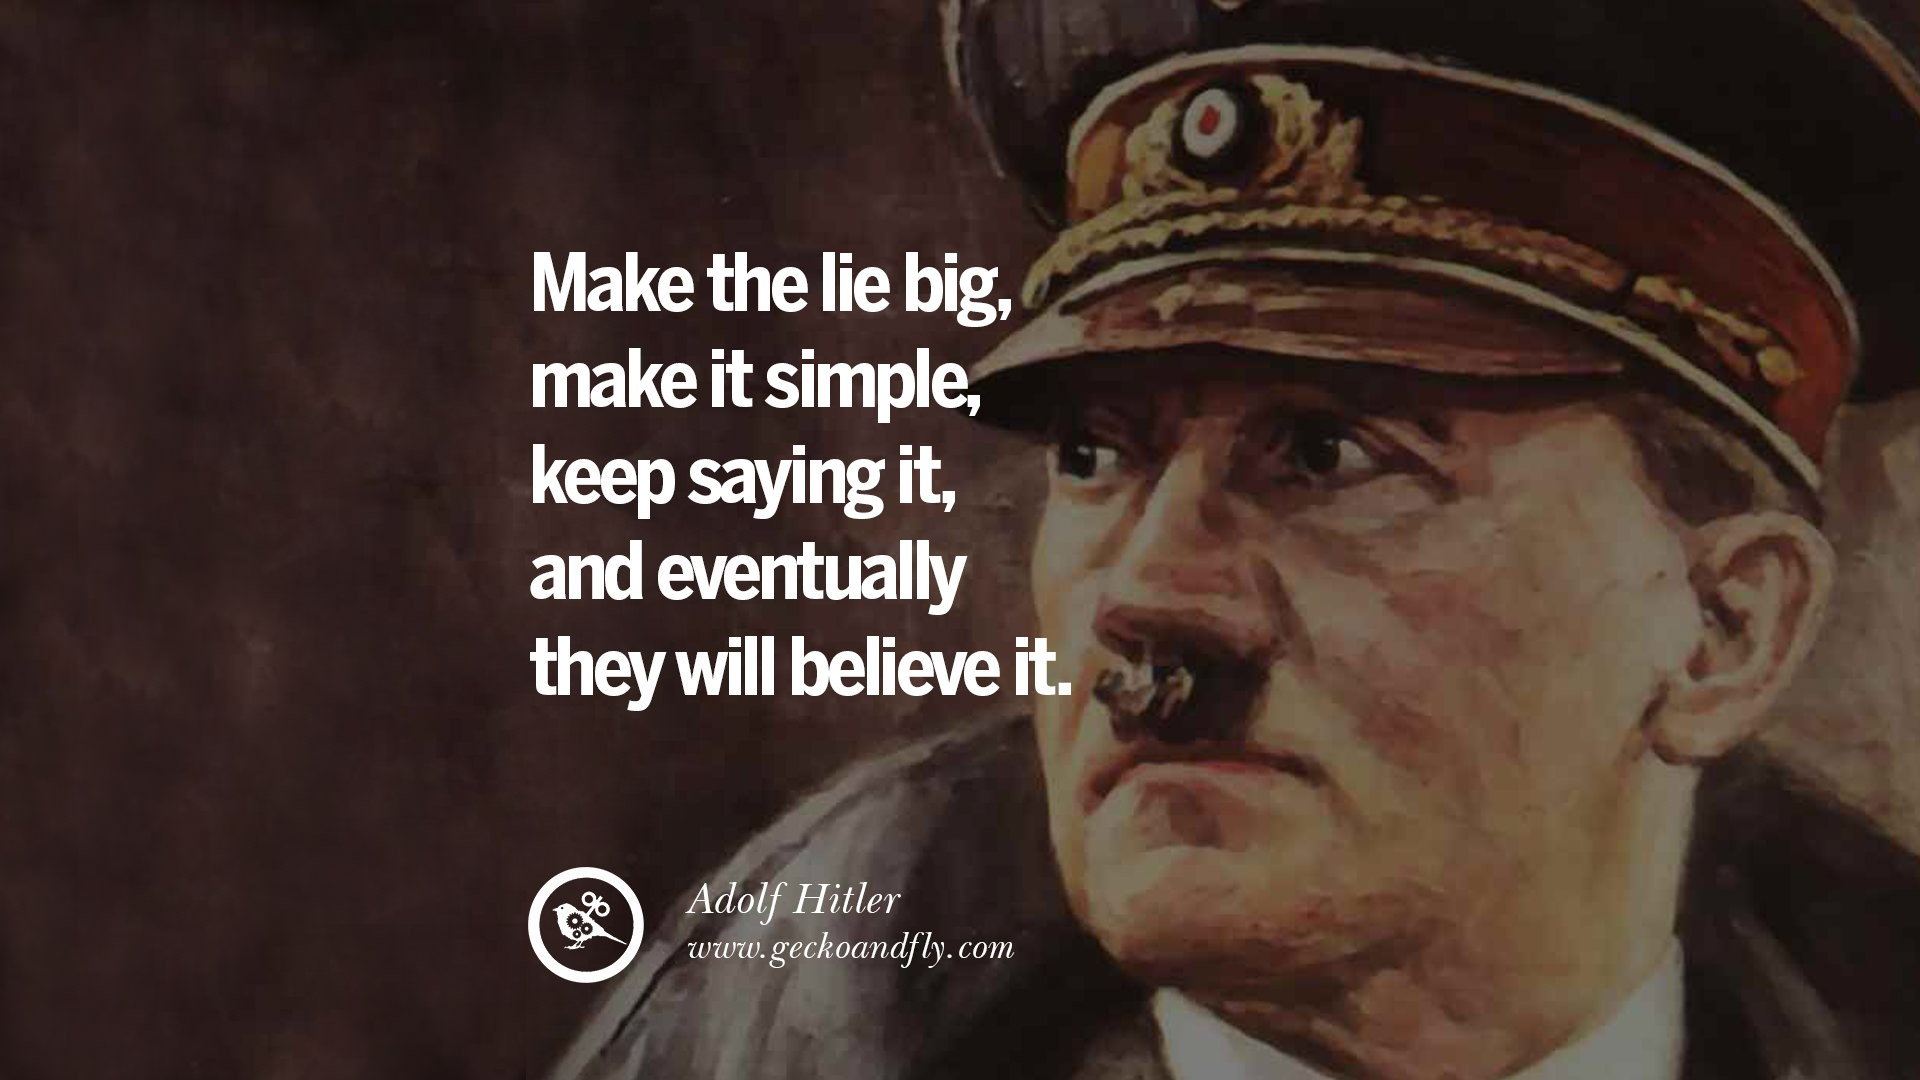 Image result for CULT LEADER HITLER PROPAGANDA QUOTE LIE